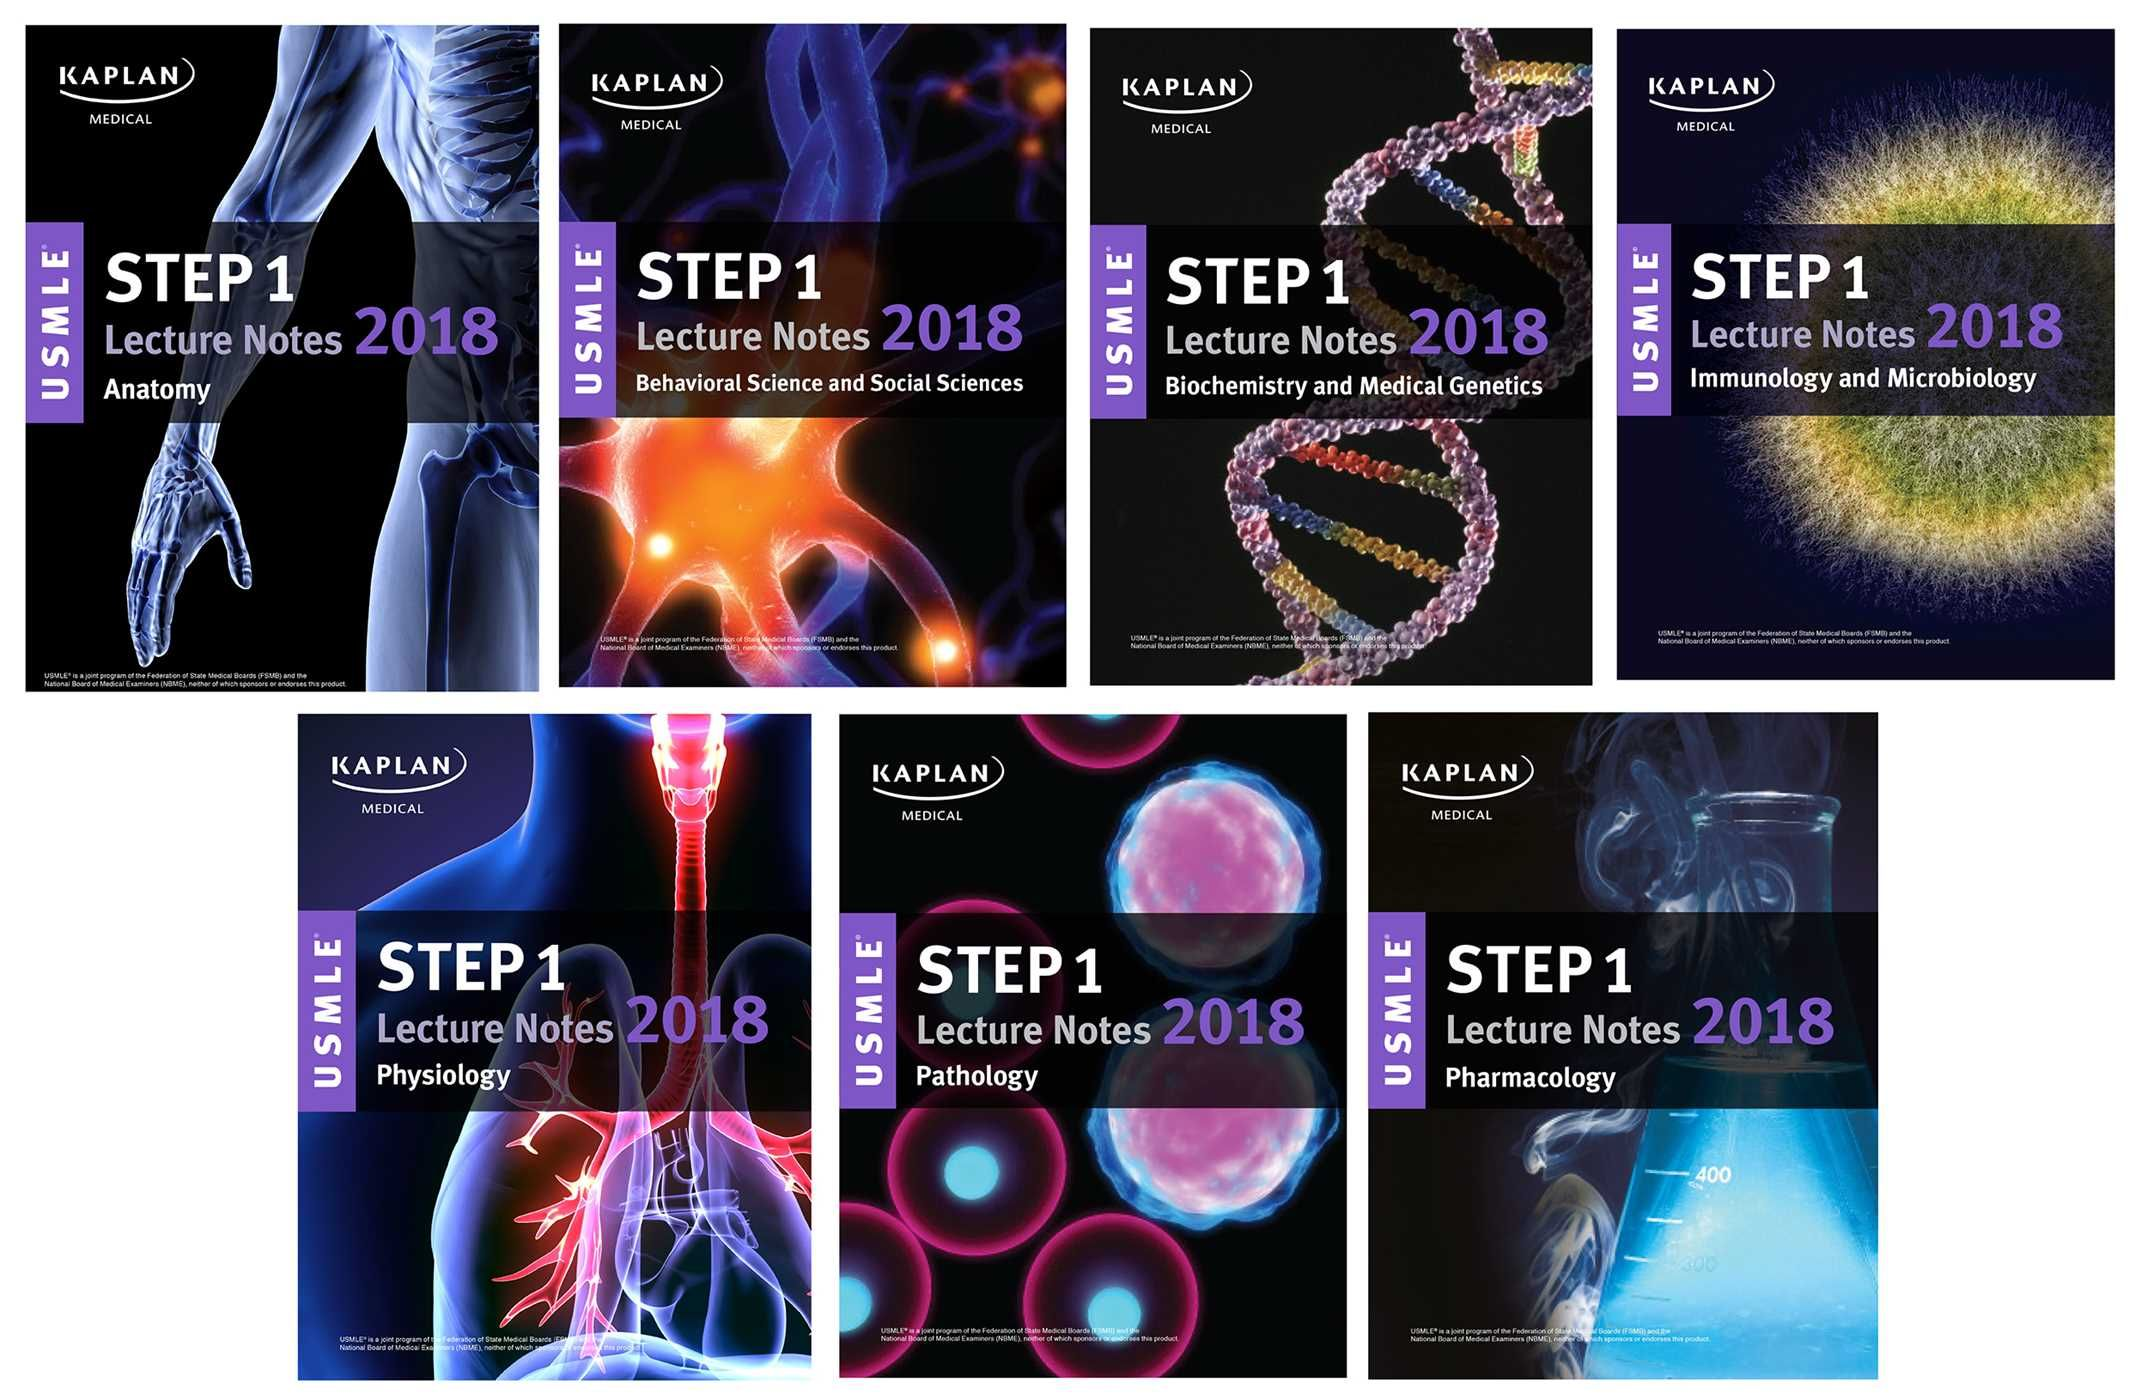 USMLE Step 1 Lecture Notes 2018 Kaplan Lecture Notes PDF